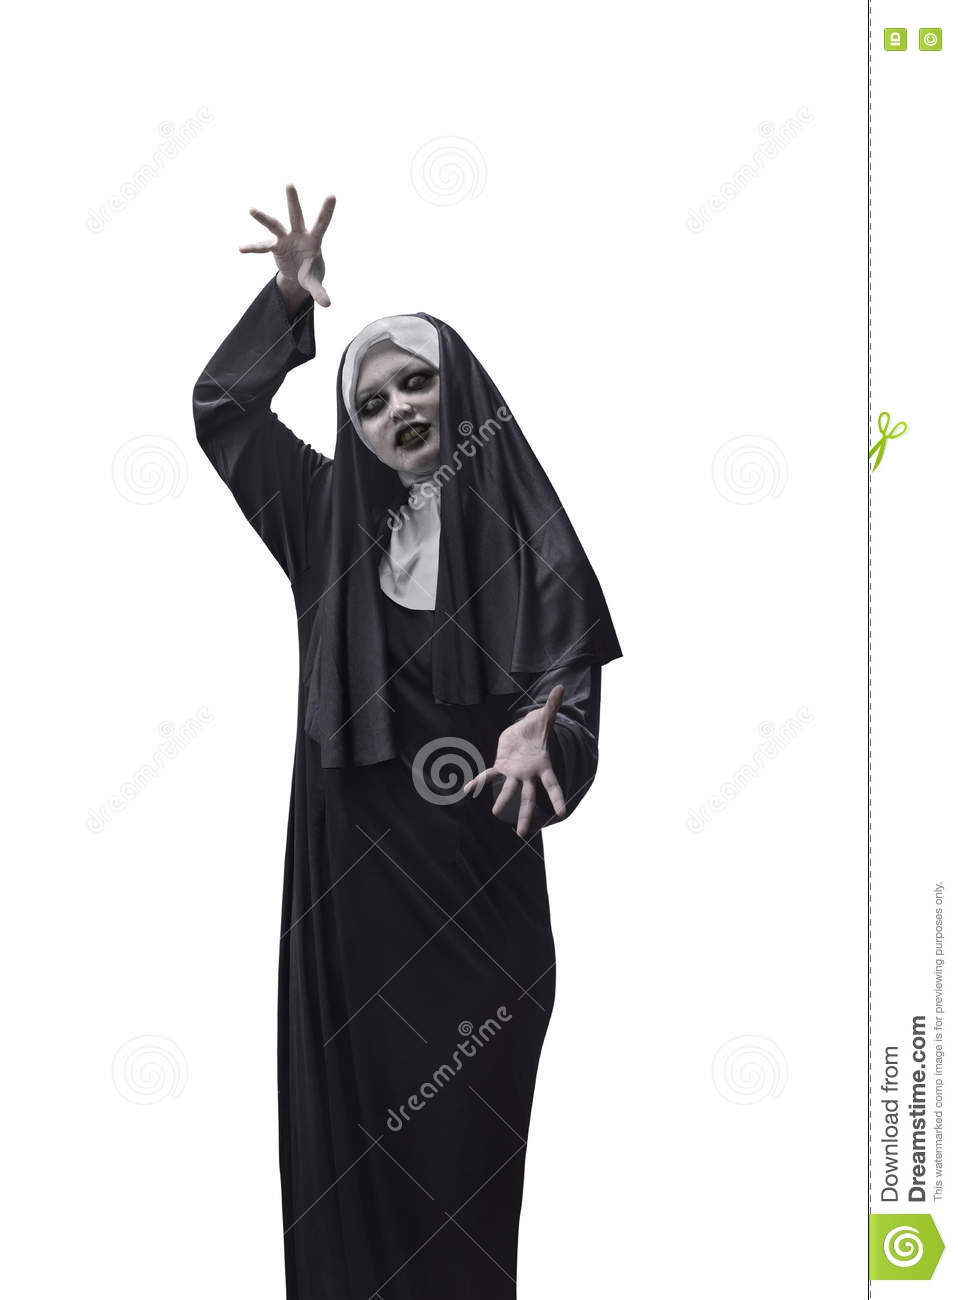 asian woman devil nun stock image. image of expressions - 78956585